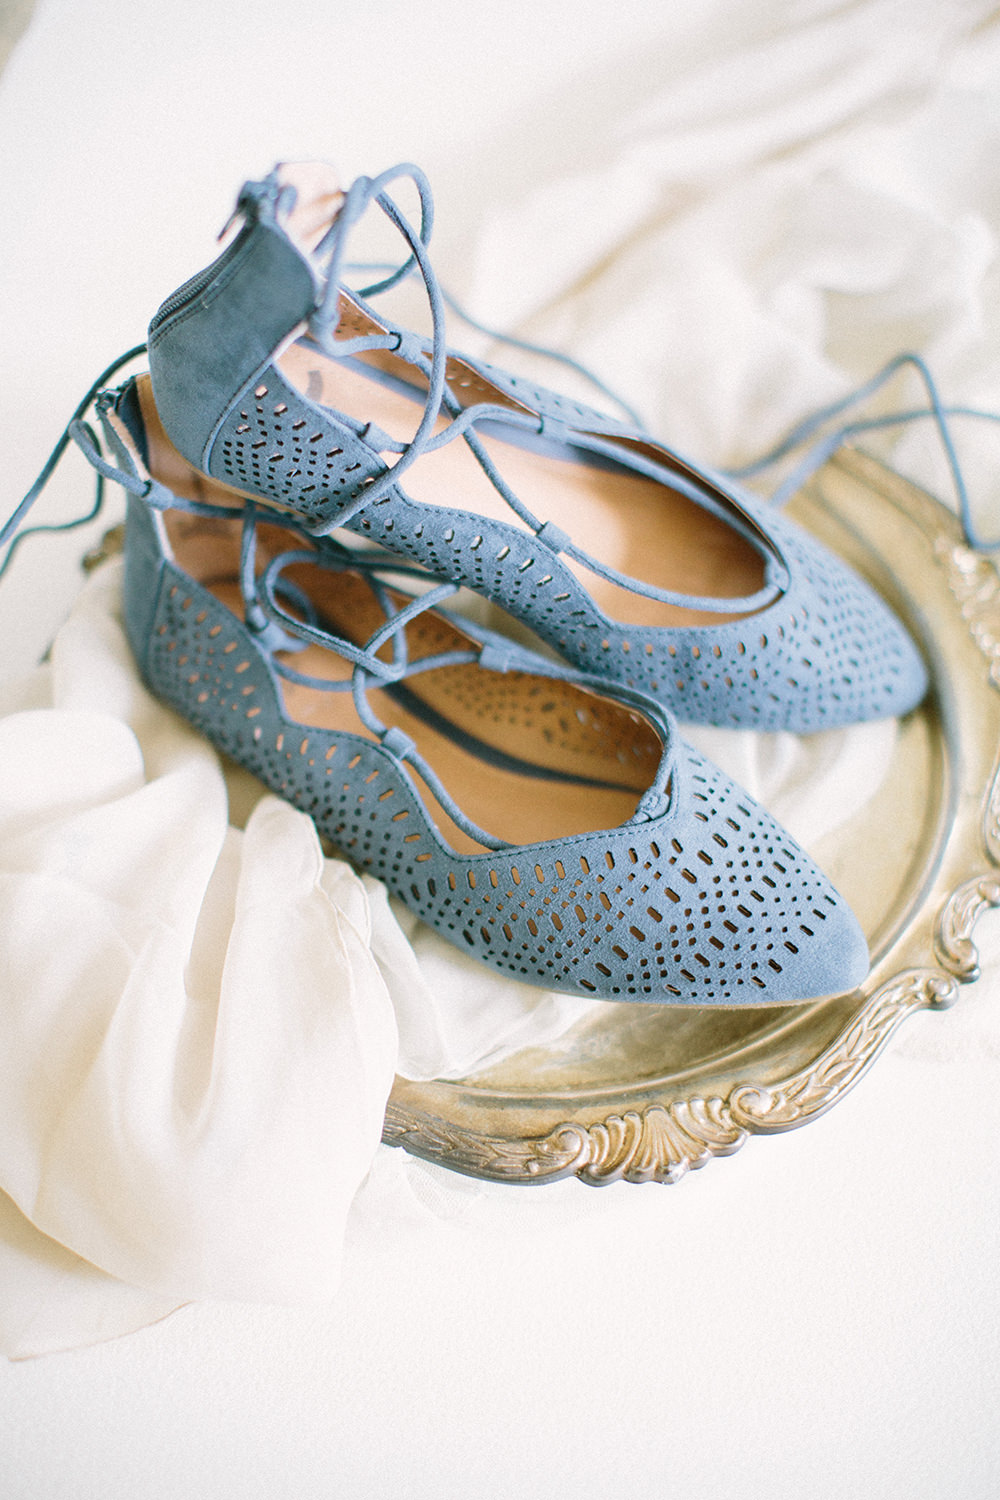 blue wedding shoes - photo by Erica J Photography https://ruffledblog.com/old-world-wedding-editorial-at-vizcaya-museum